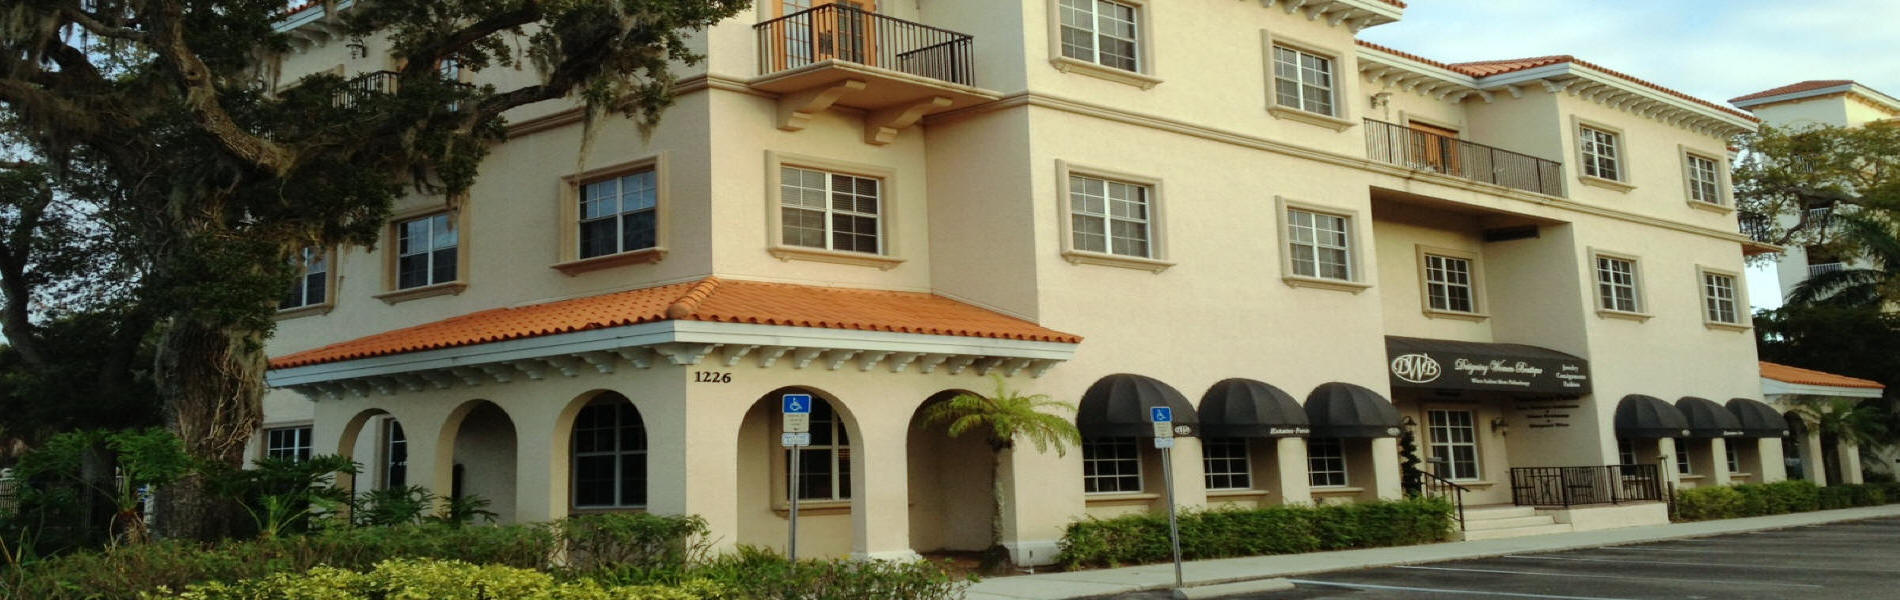 Lawtey Florida Investments, Cash Sales Commercial Real Estate